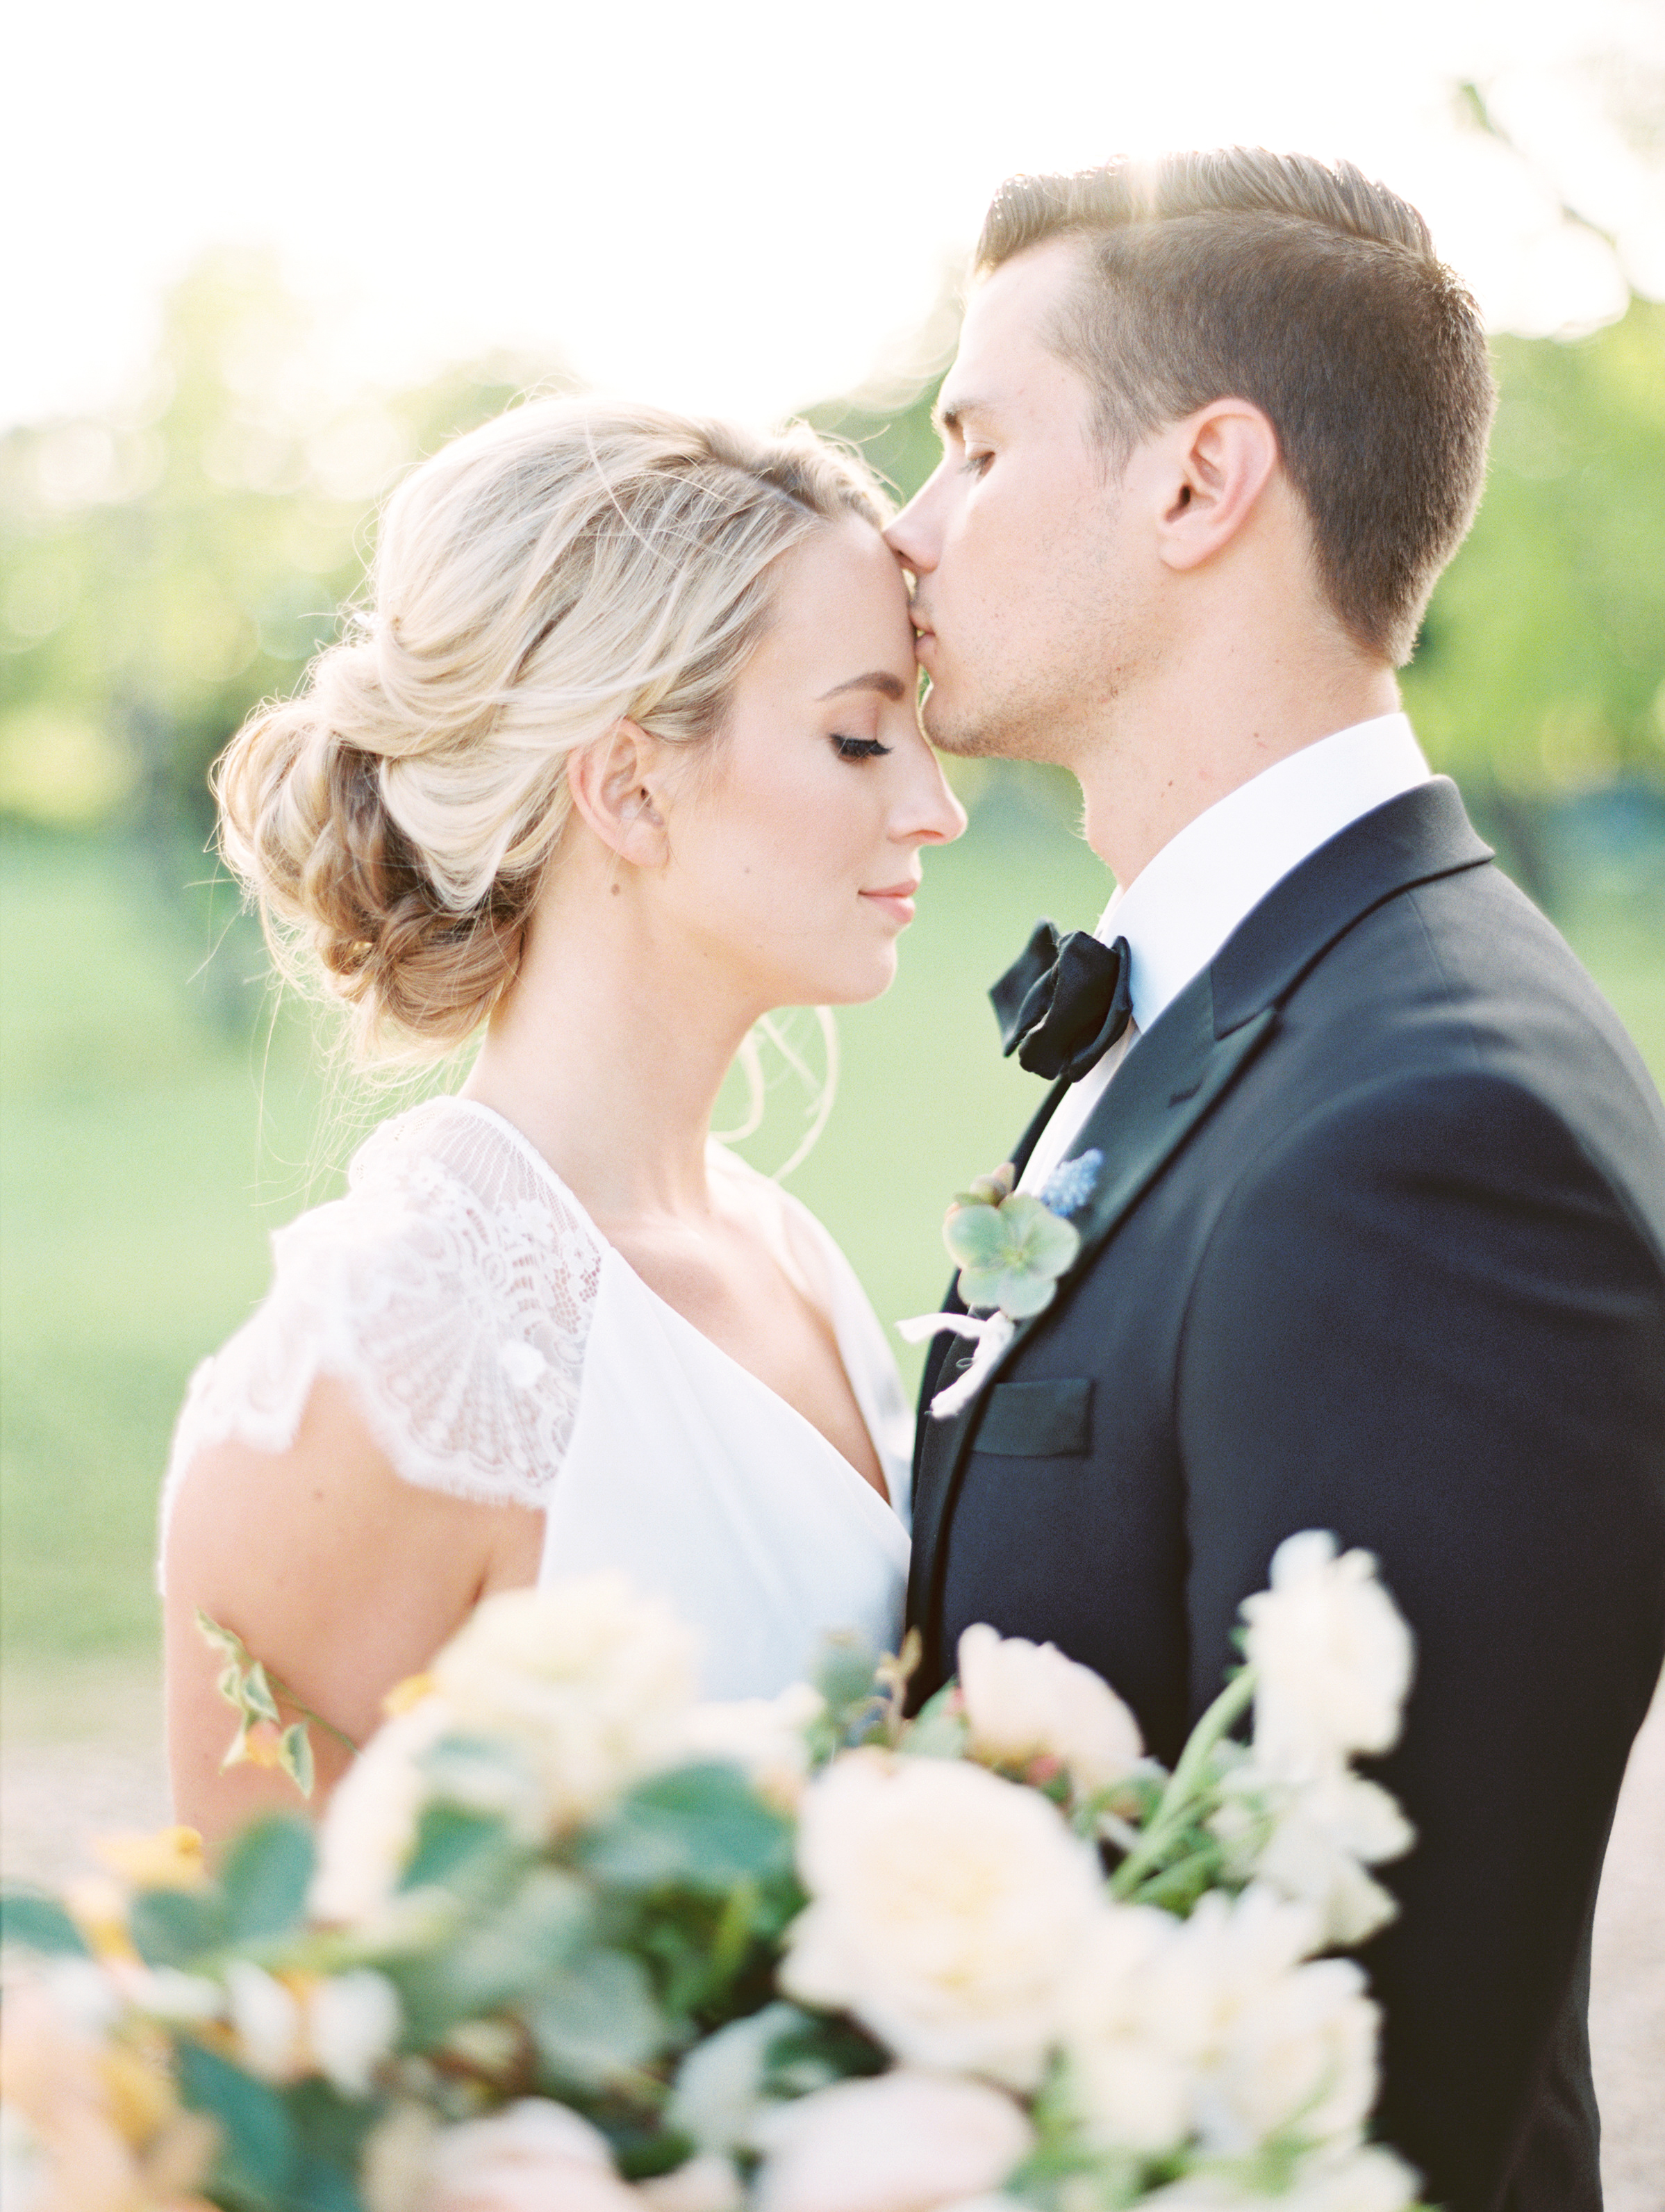 - Allen Tsai is a fine art film photographer who travels the world shooting weddings, elopements, and engagements. He has won various prestigious awards, including AACWP Favorite Photographer 2016 and 2017.